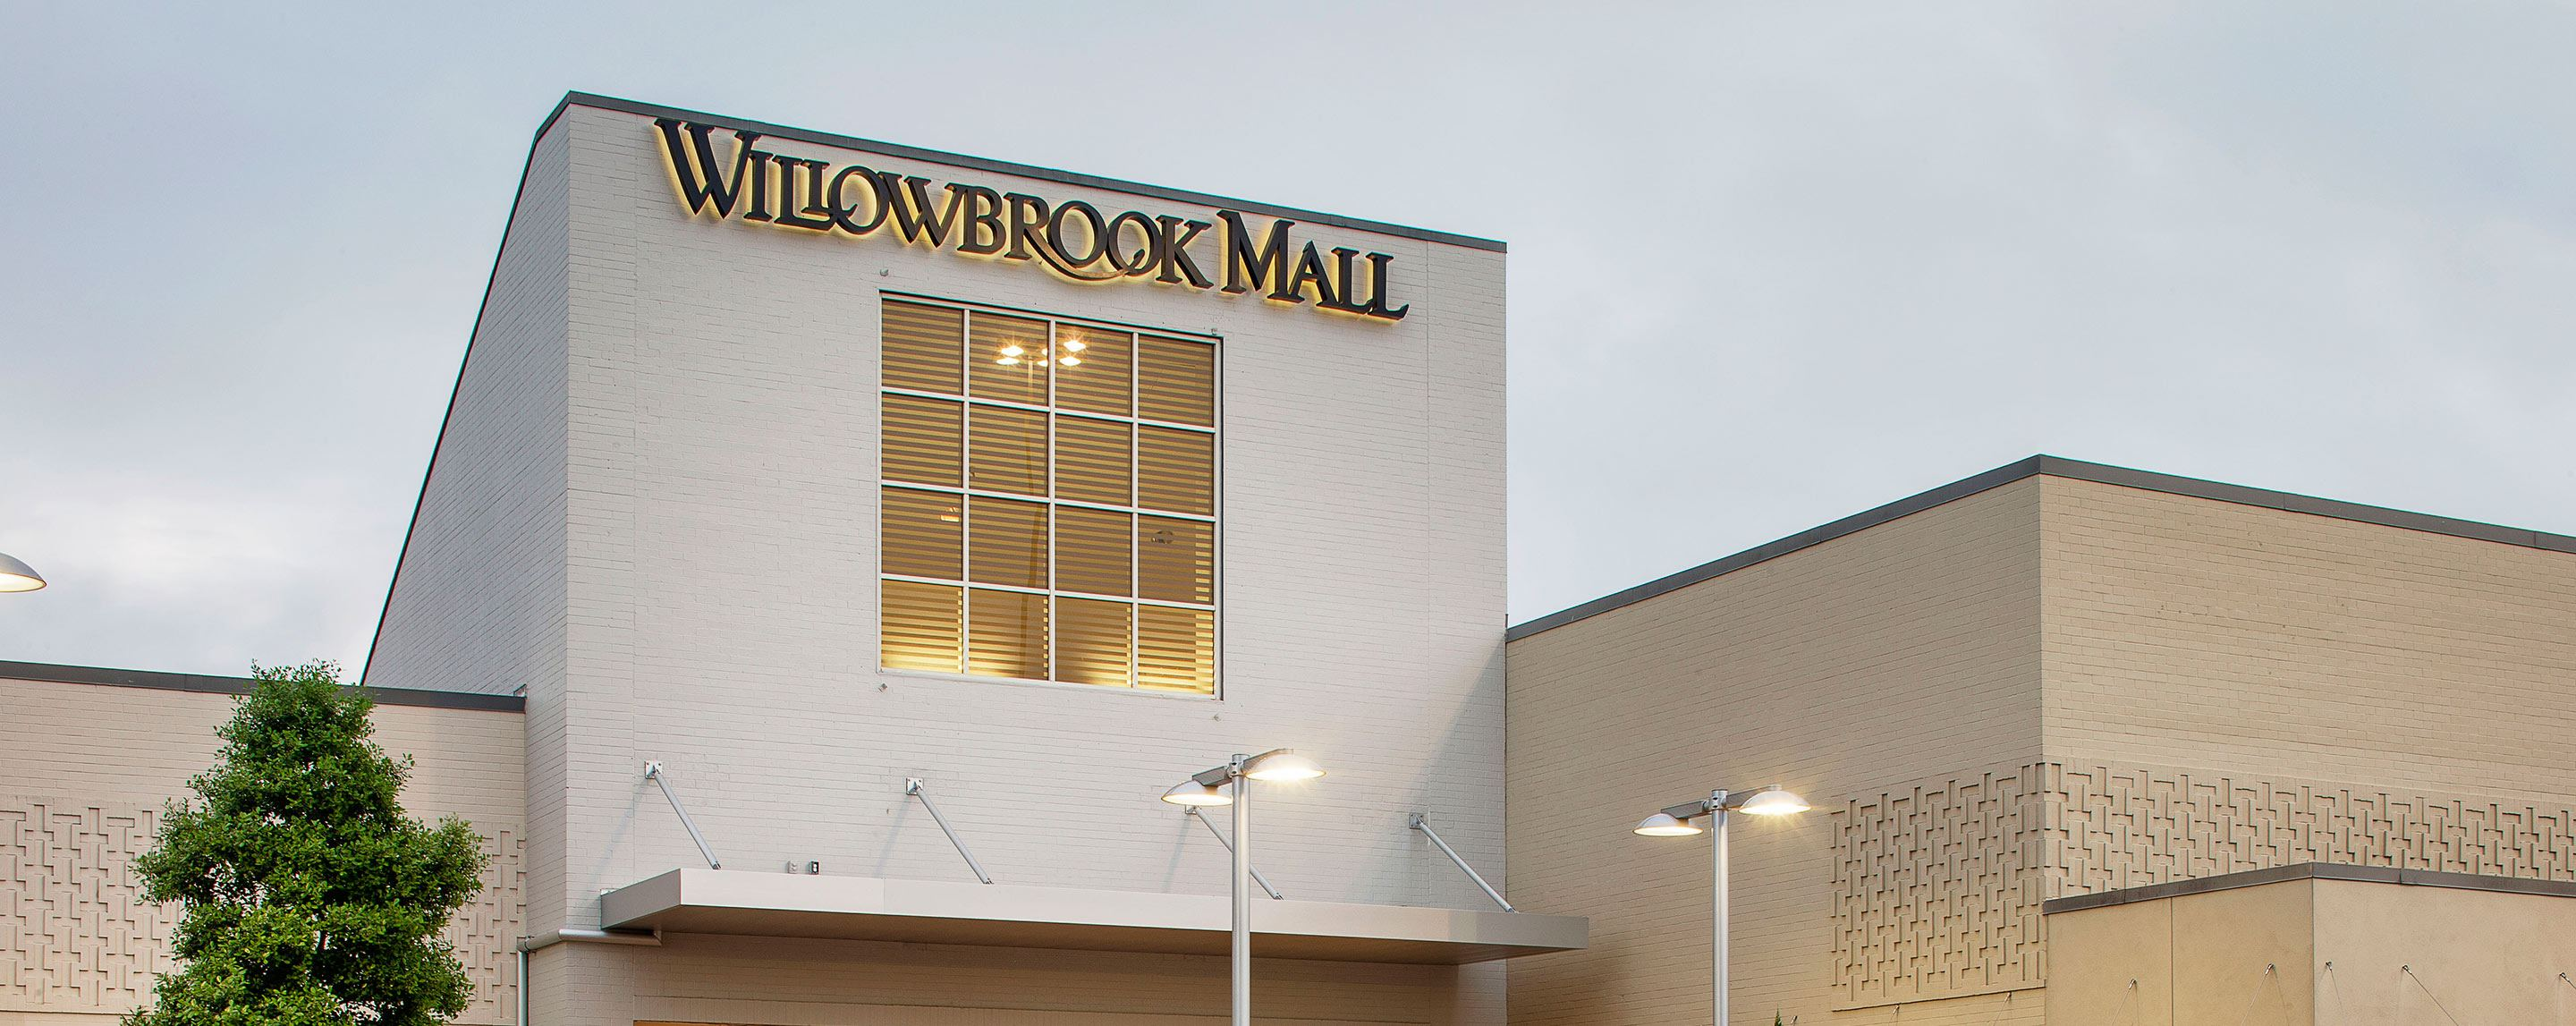 """""""Willowbrook Mall"""" is printed in dark lettering above the large square window of an indoor shopping"""